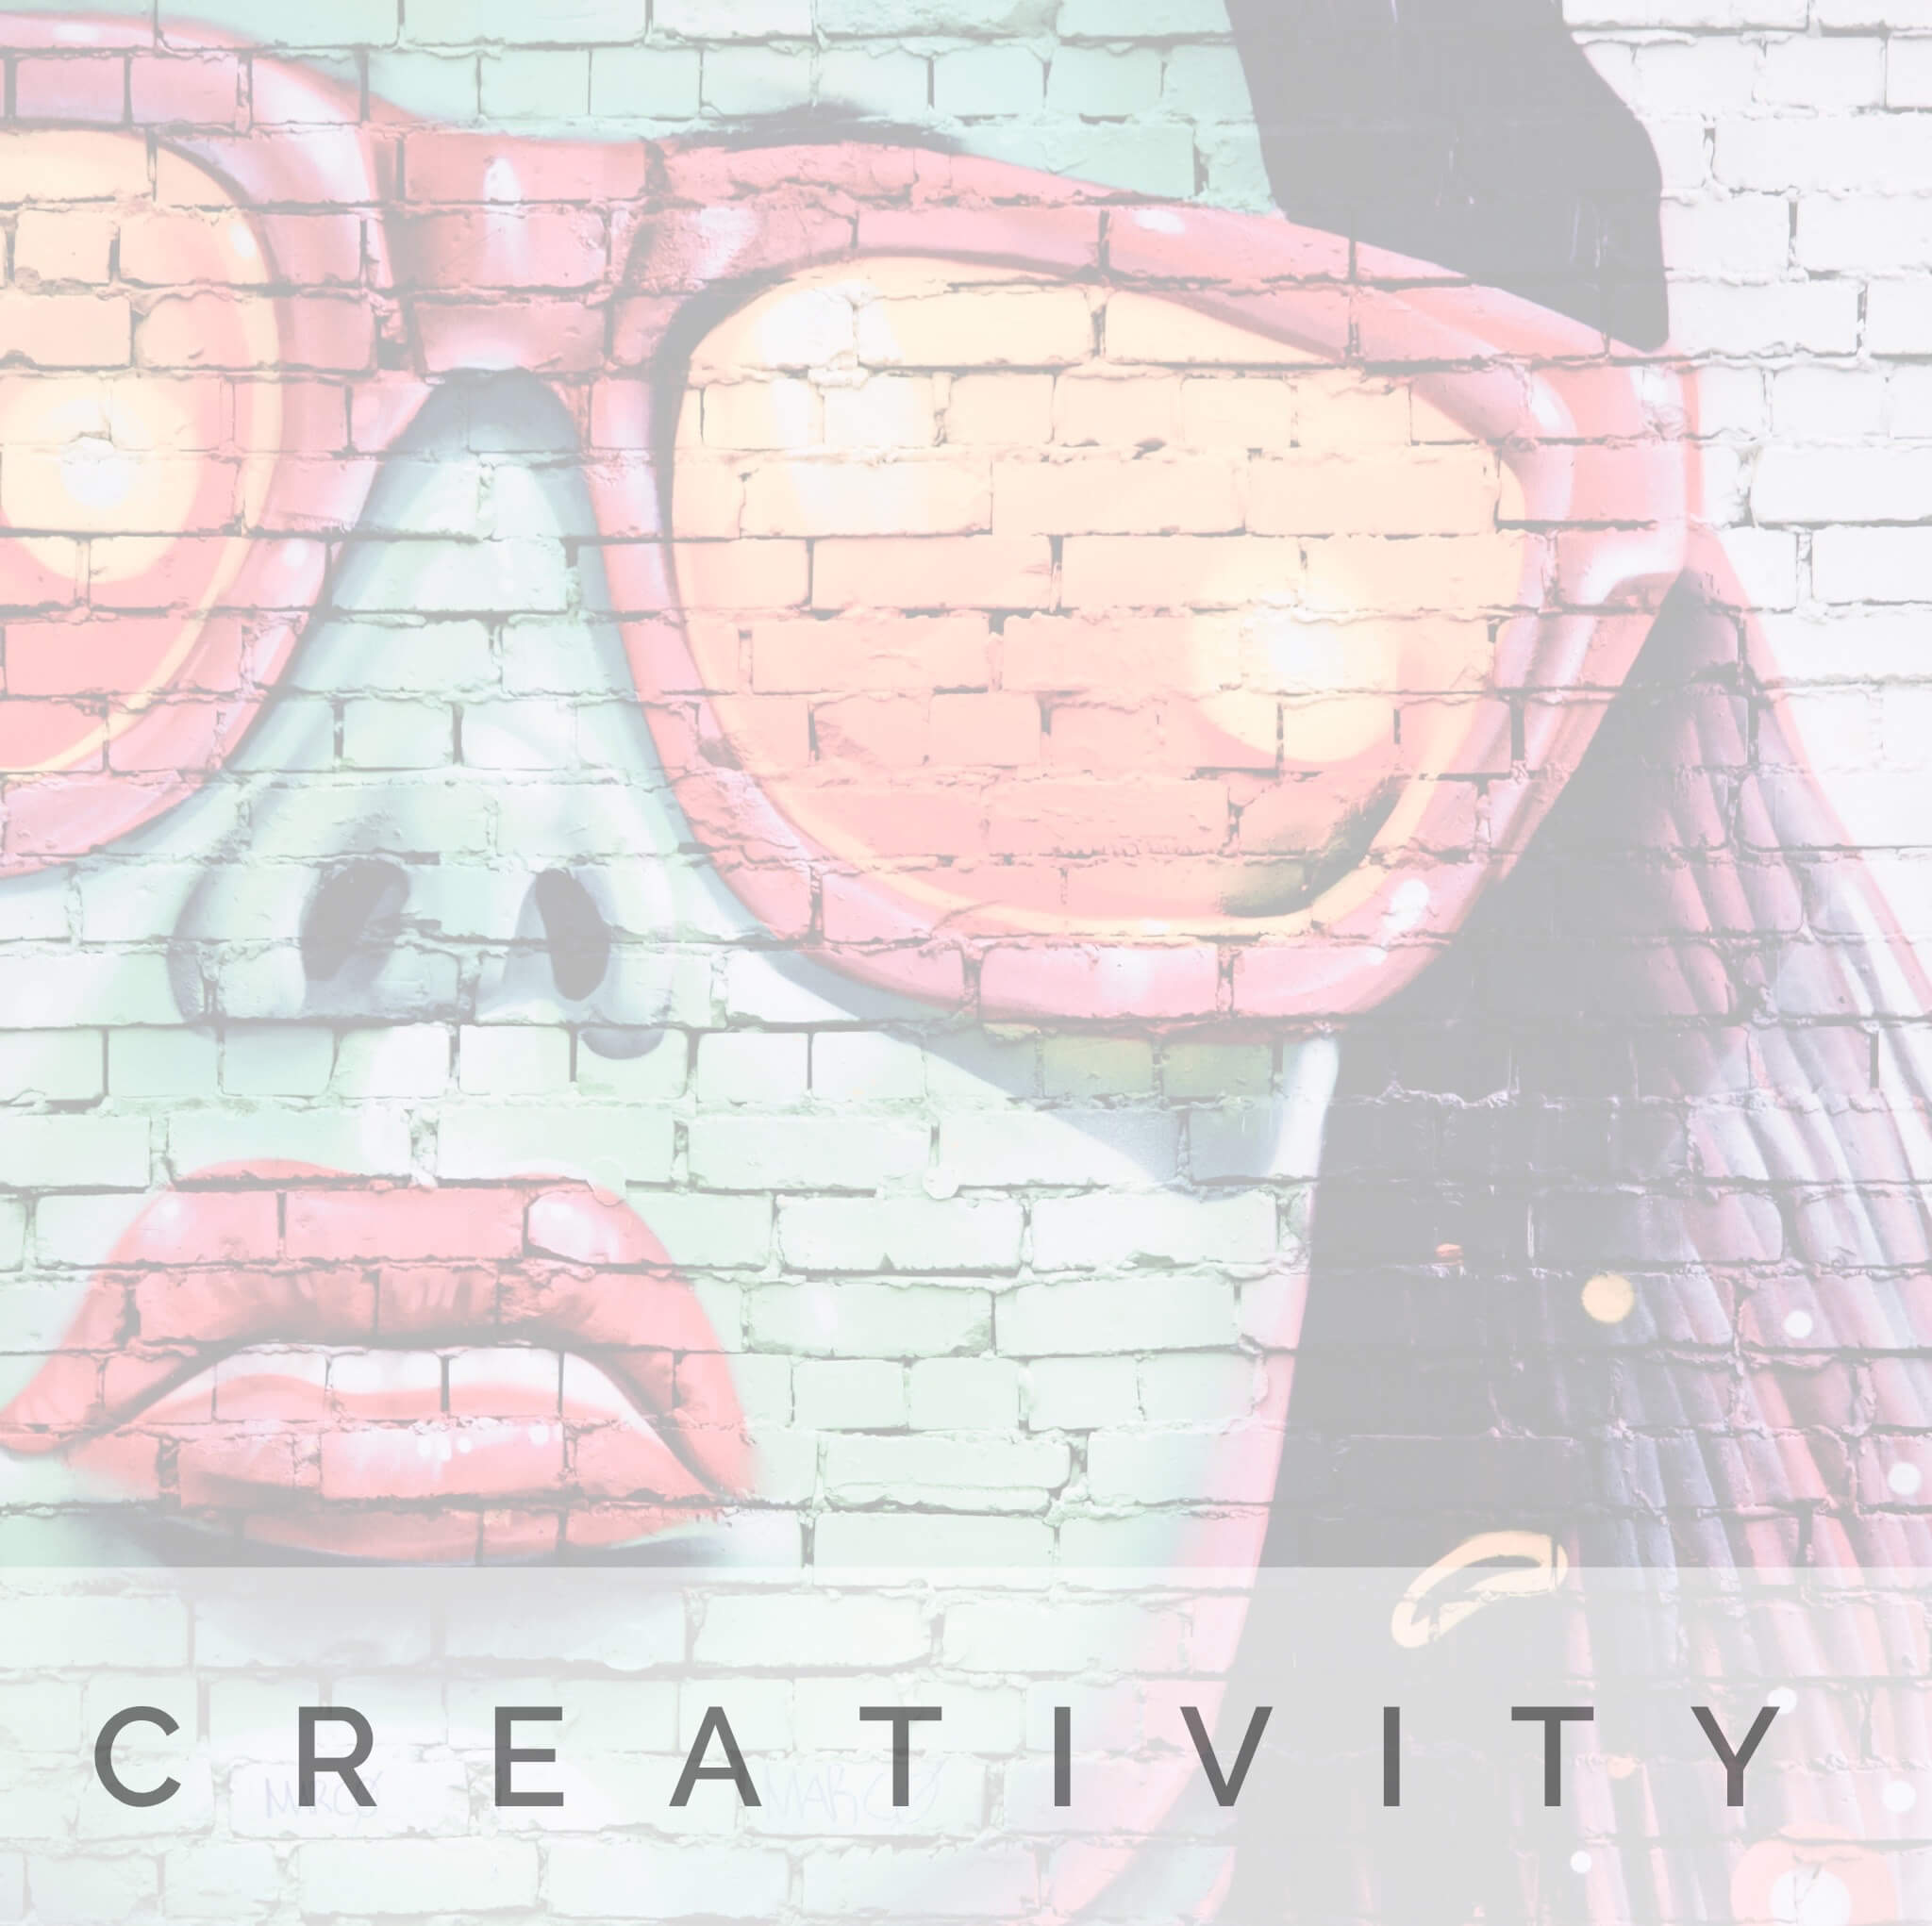 Creativity | Strength | Signature Wisdom